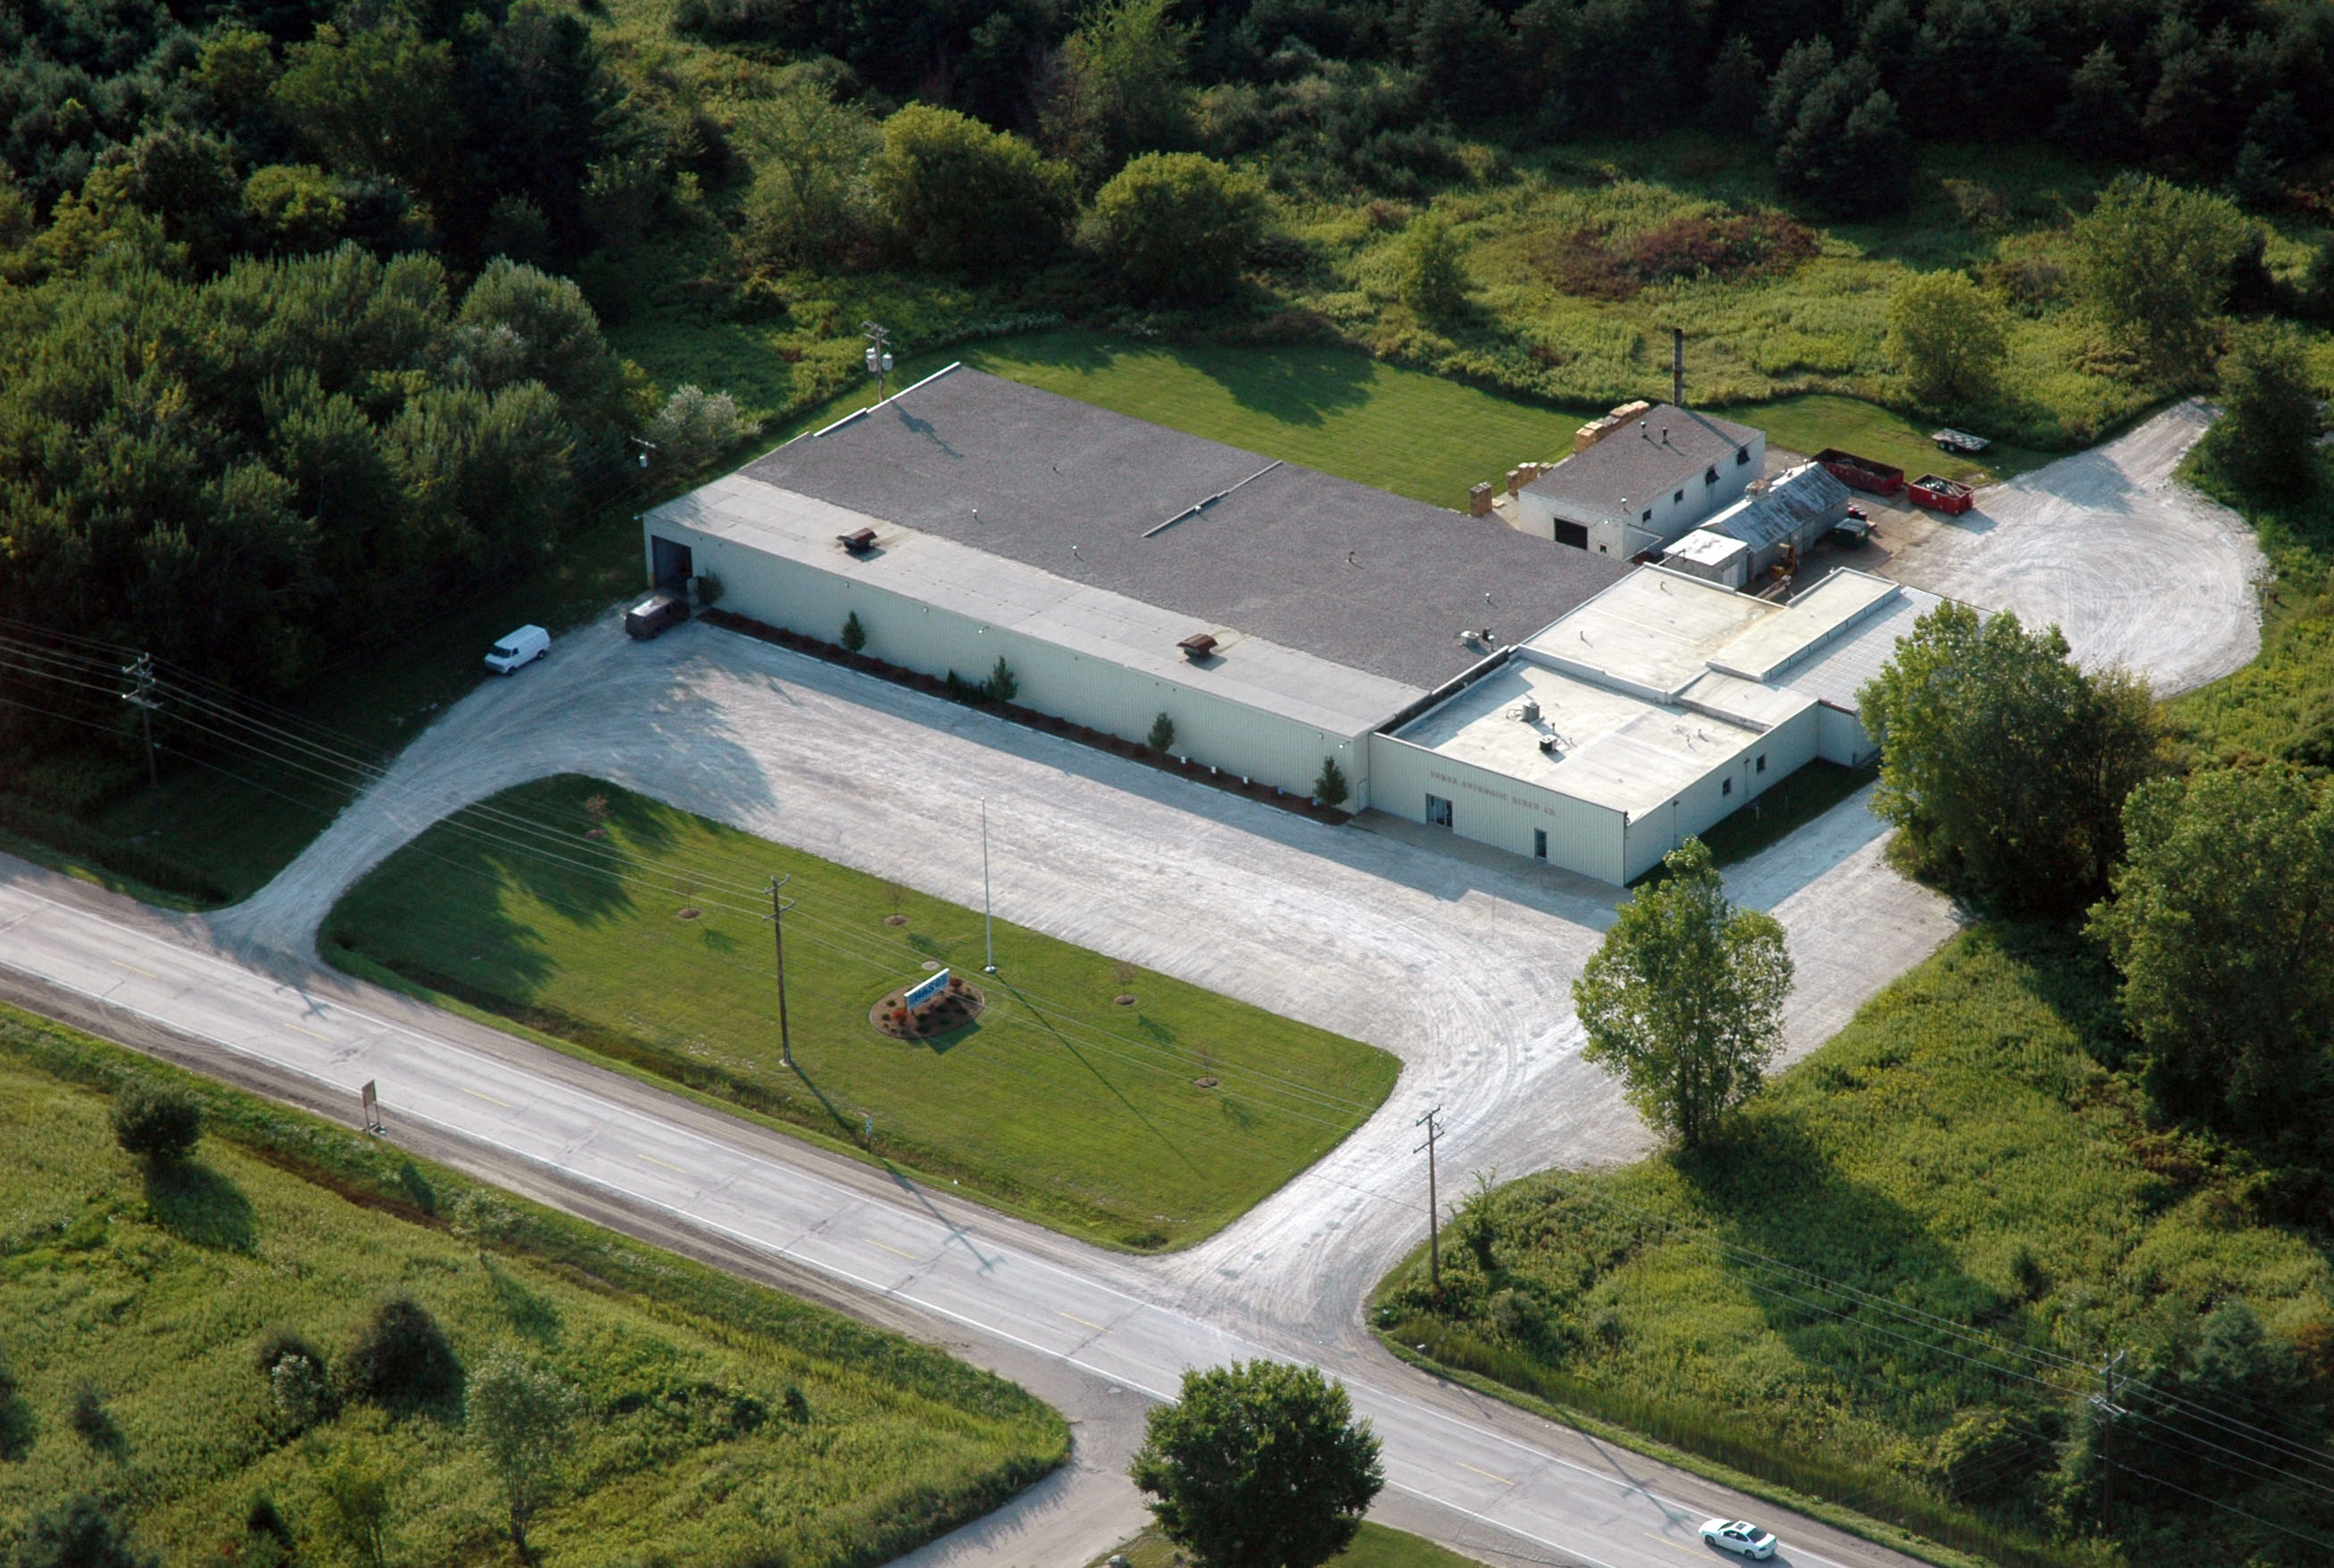 Huron Automatic Screw Company Meets the Needs of a Diverse Client Base